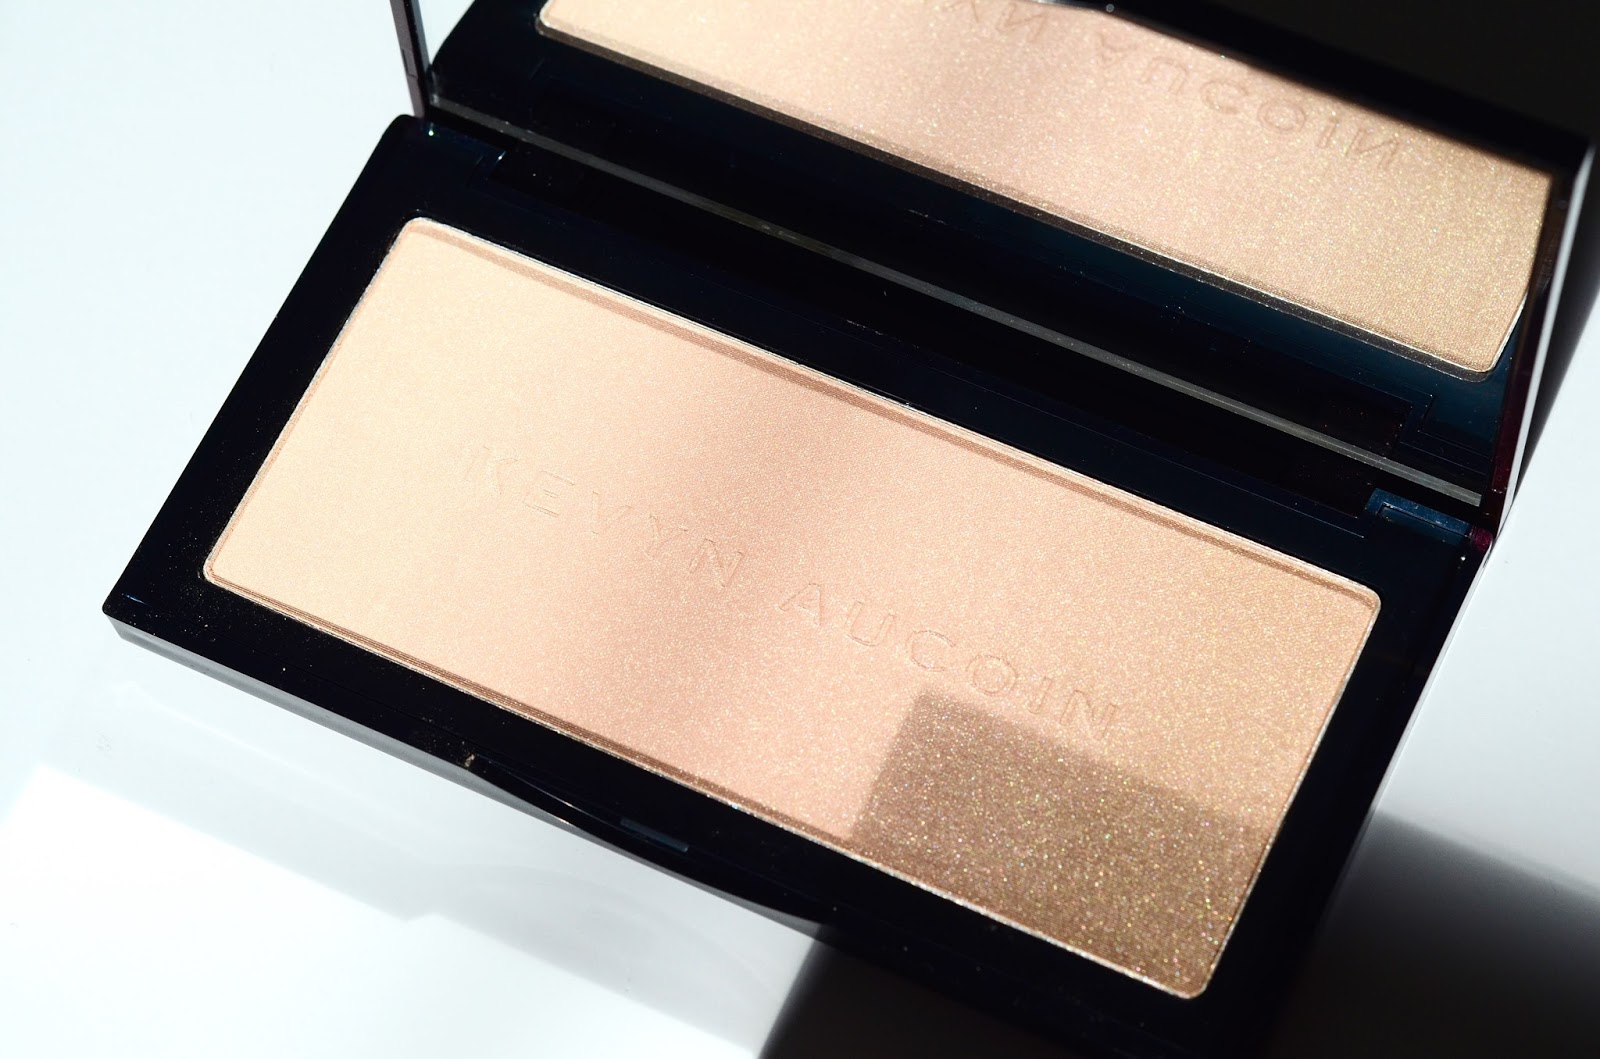 Iluminador Kevyn Aucoin Kevyn Aucoin Neo Highlighter Neo Limelight Swatches Review